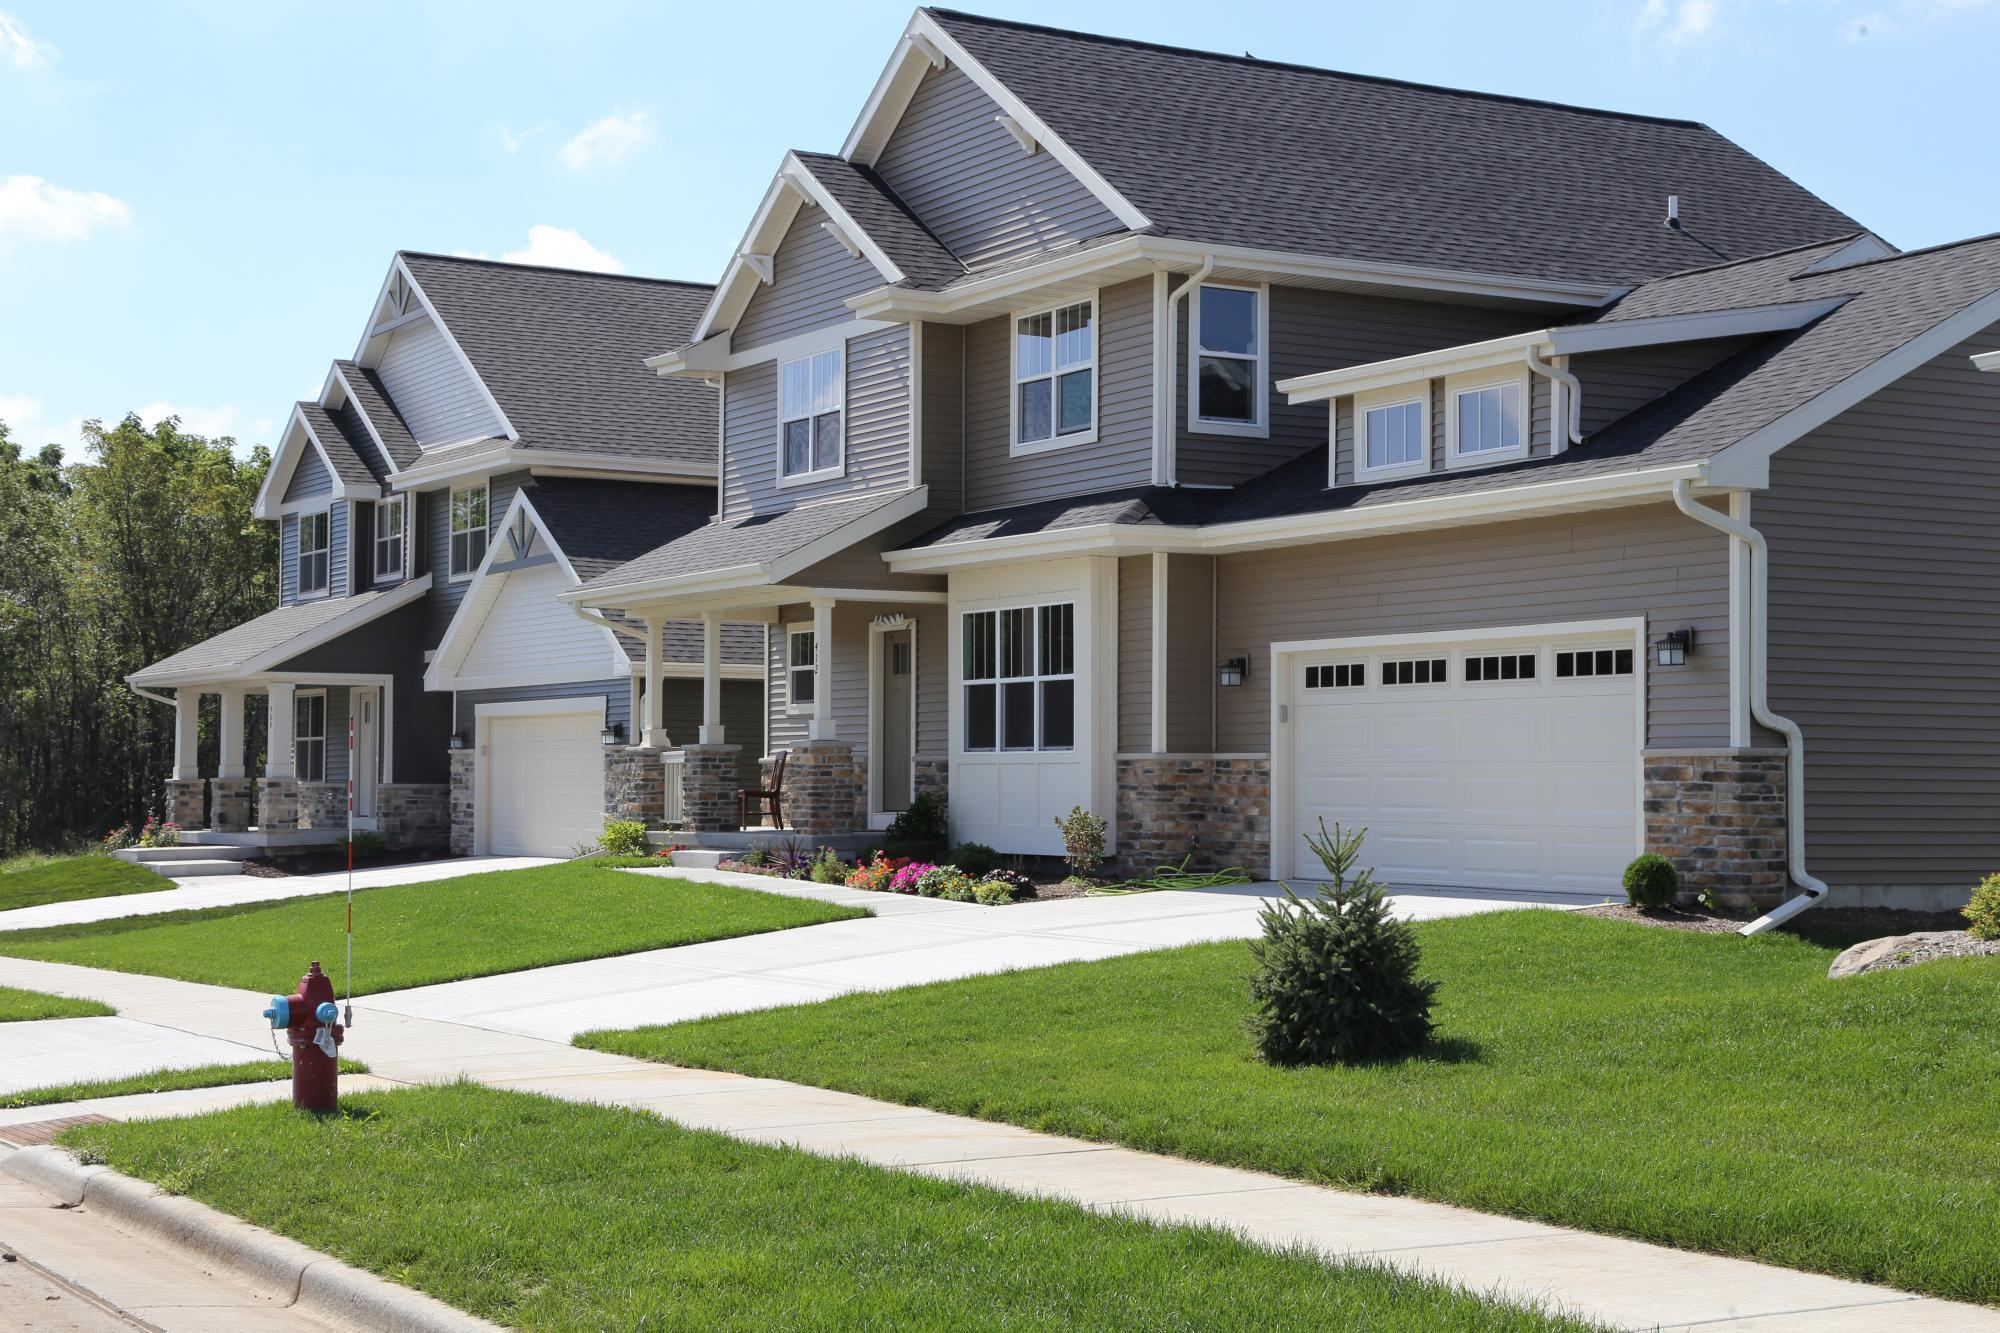 Homes For Sale Middleton Wi >> Chapel View By Encore Homes New Homes For Sale Middleton Wi